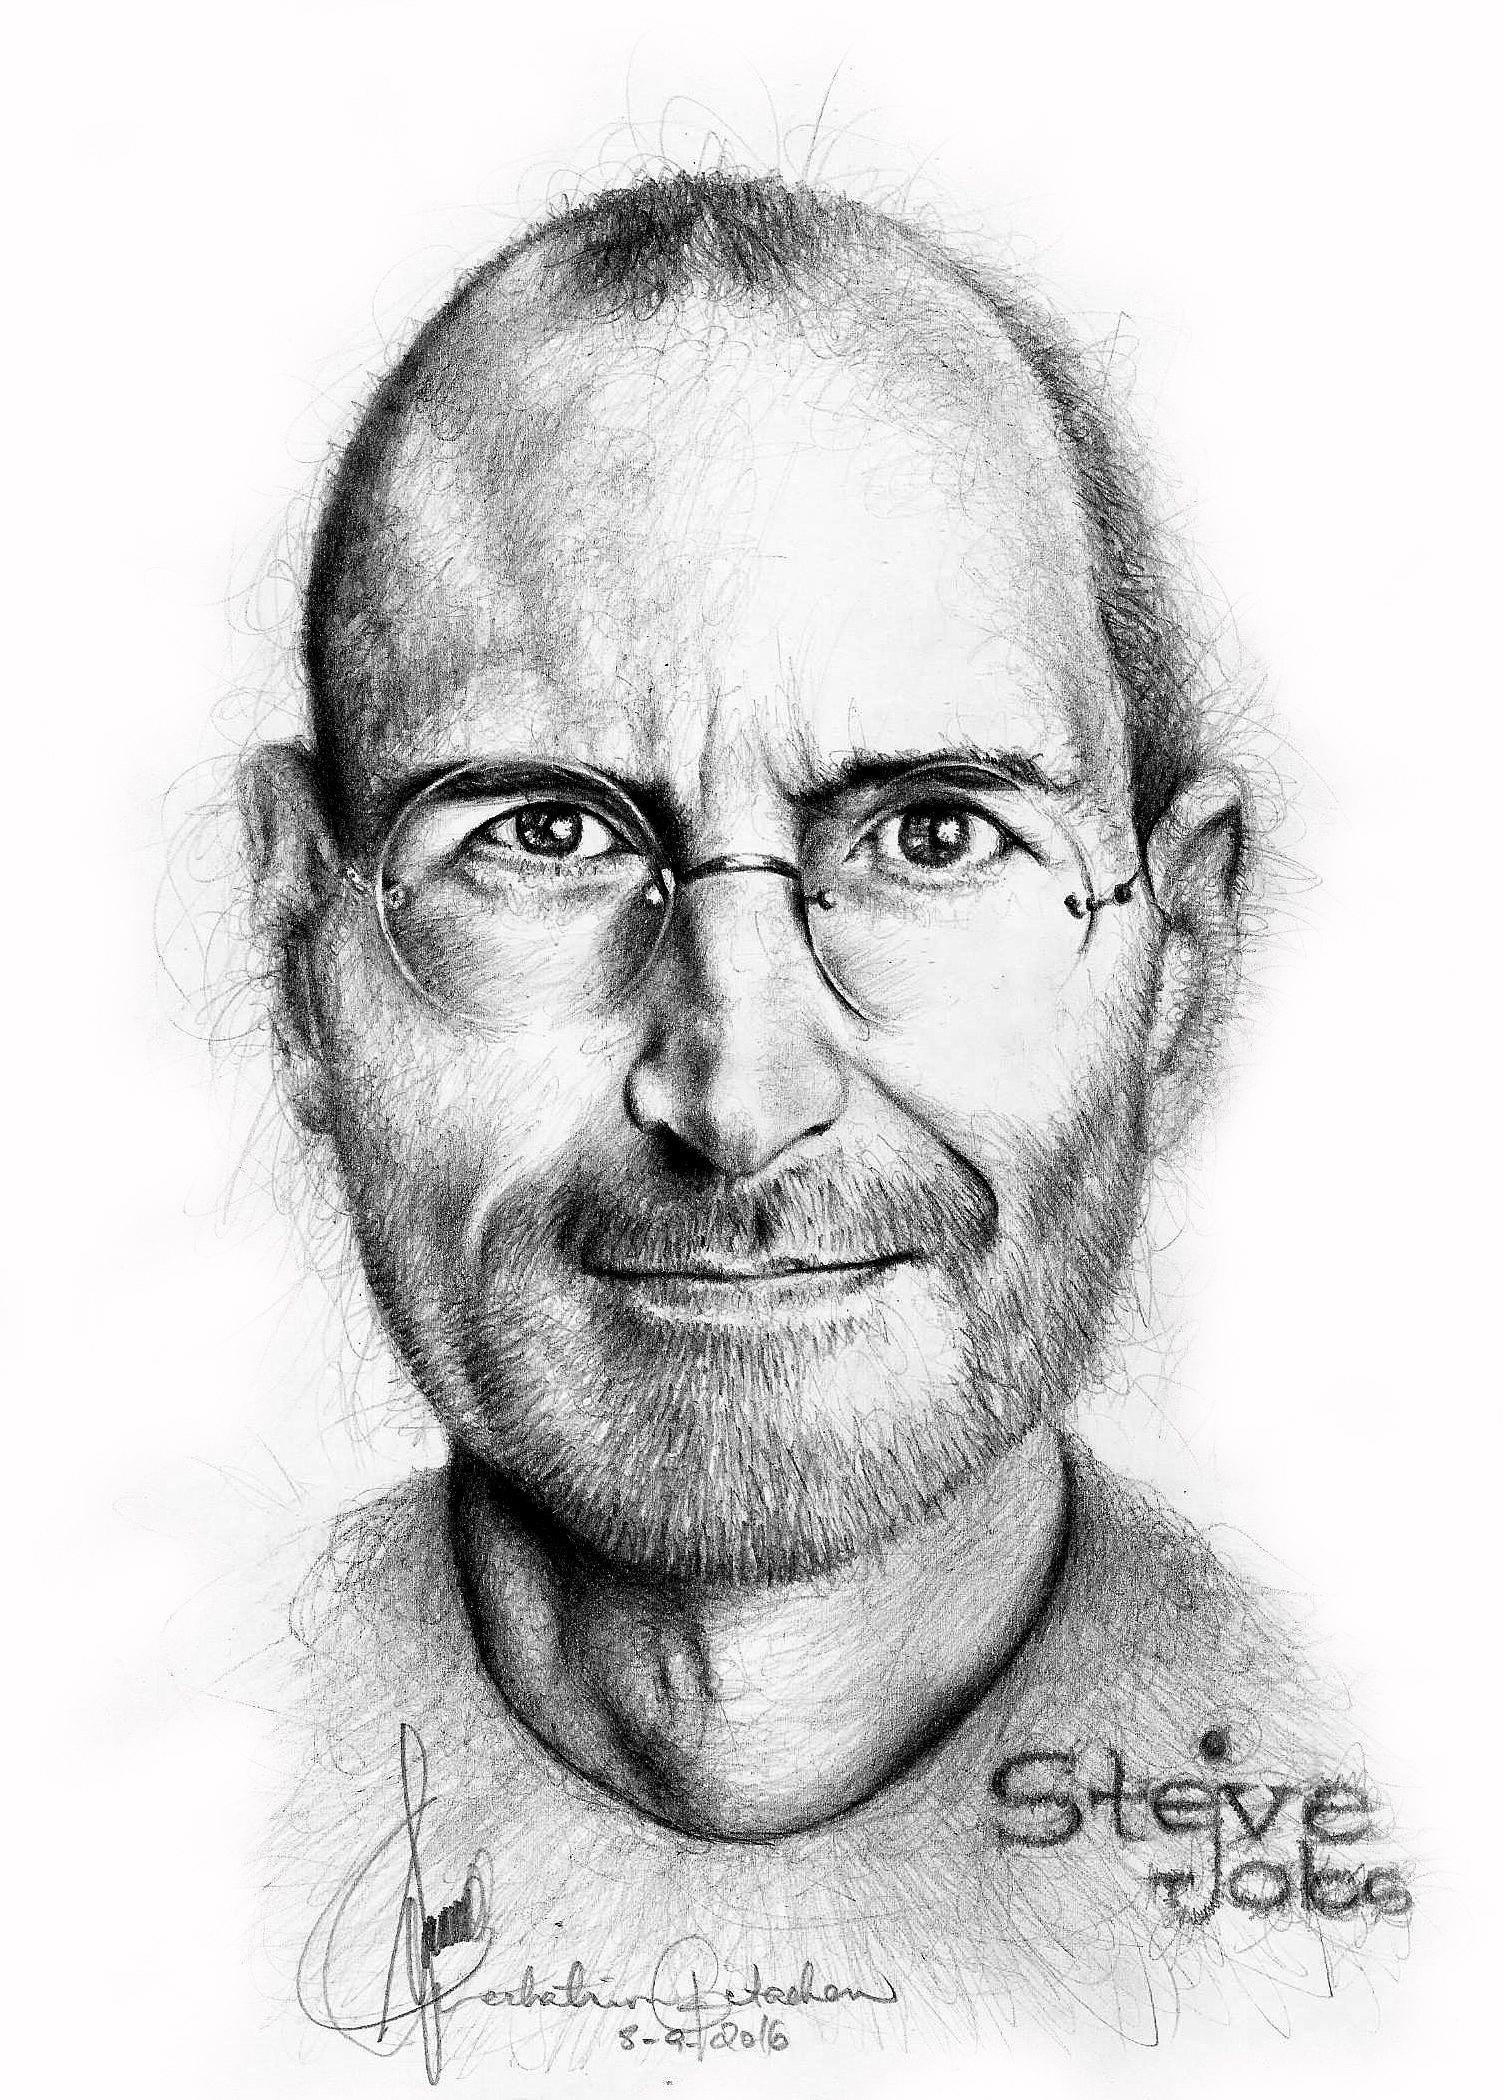 Steve jobs pencil illustration steve jobs pencil illustration pencil drawings graphite drawings